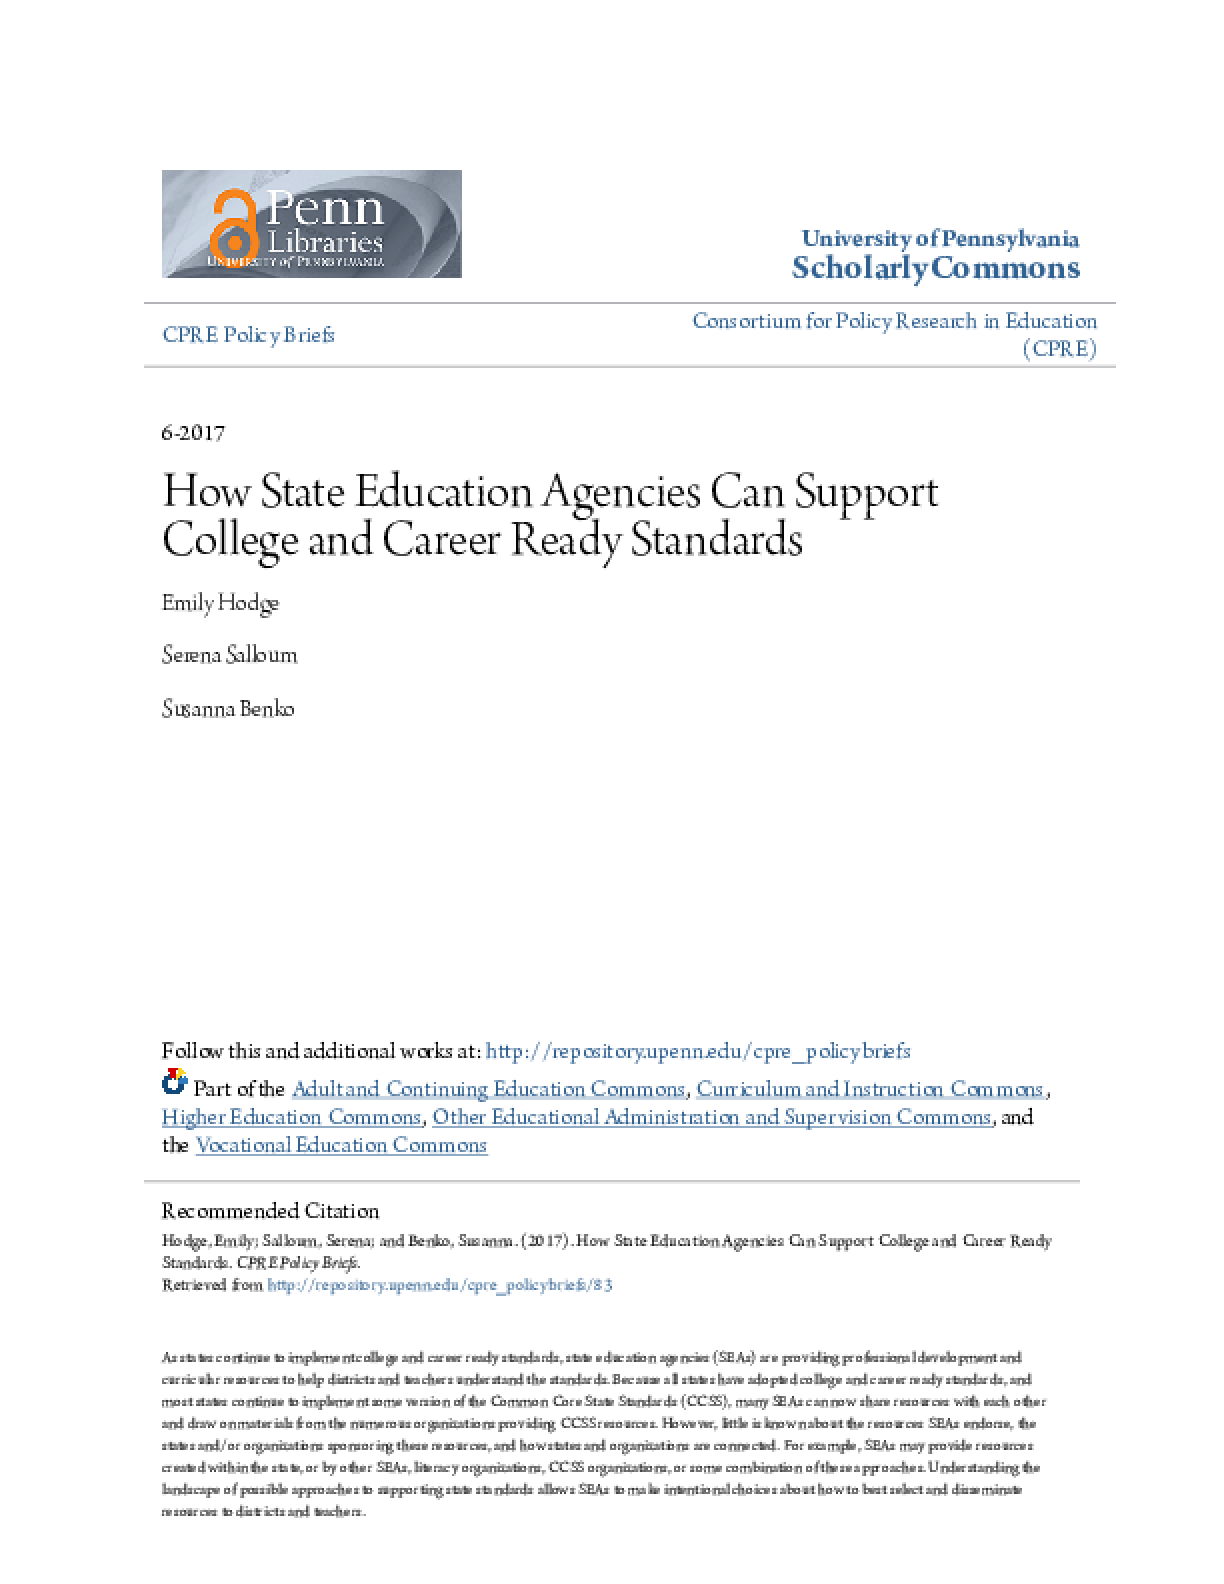 How State Education Agencies Can Support College and Career Ready Standards